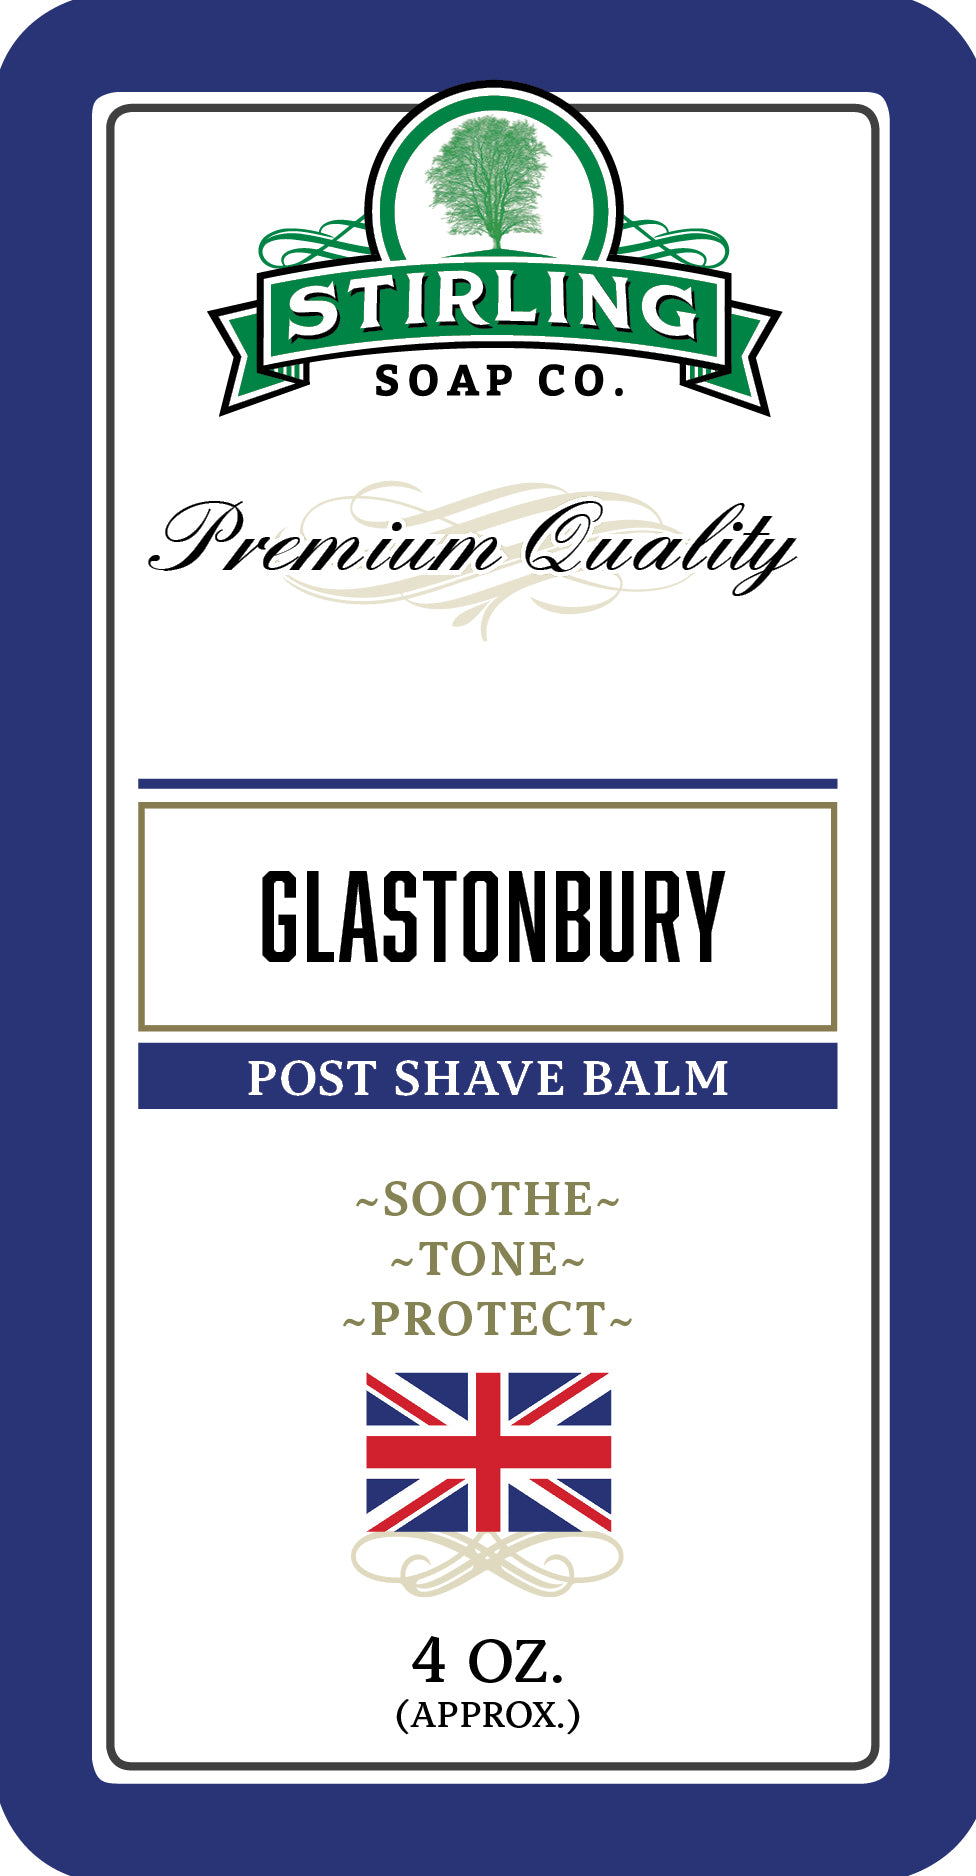 Glastonbury - Post-Shave Balm